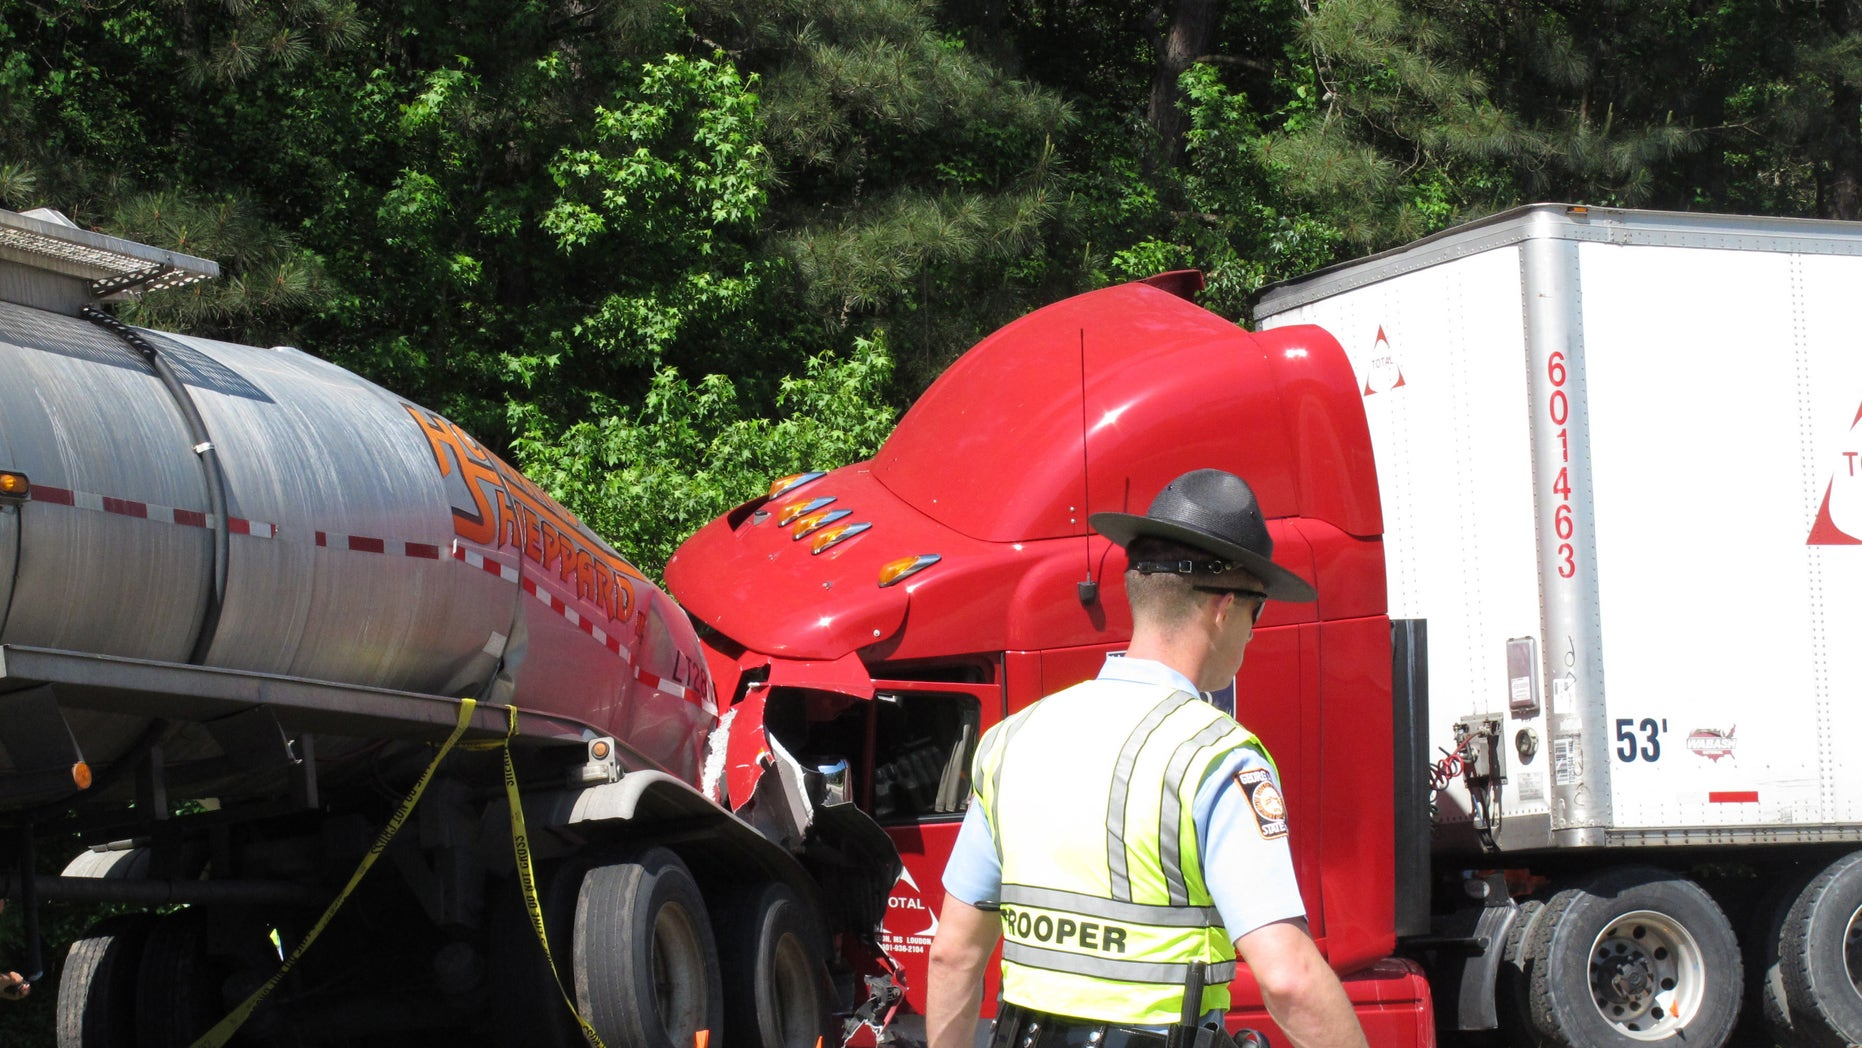 A Georgia state trooper works the scene of a deadly crash in April 2015.